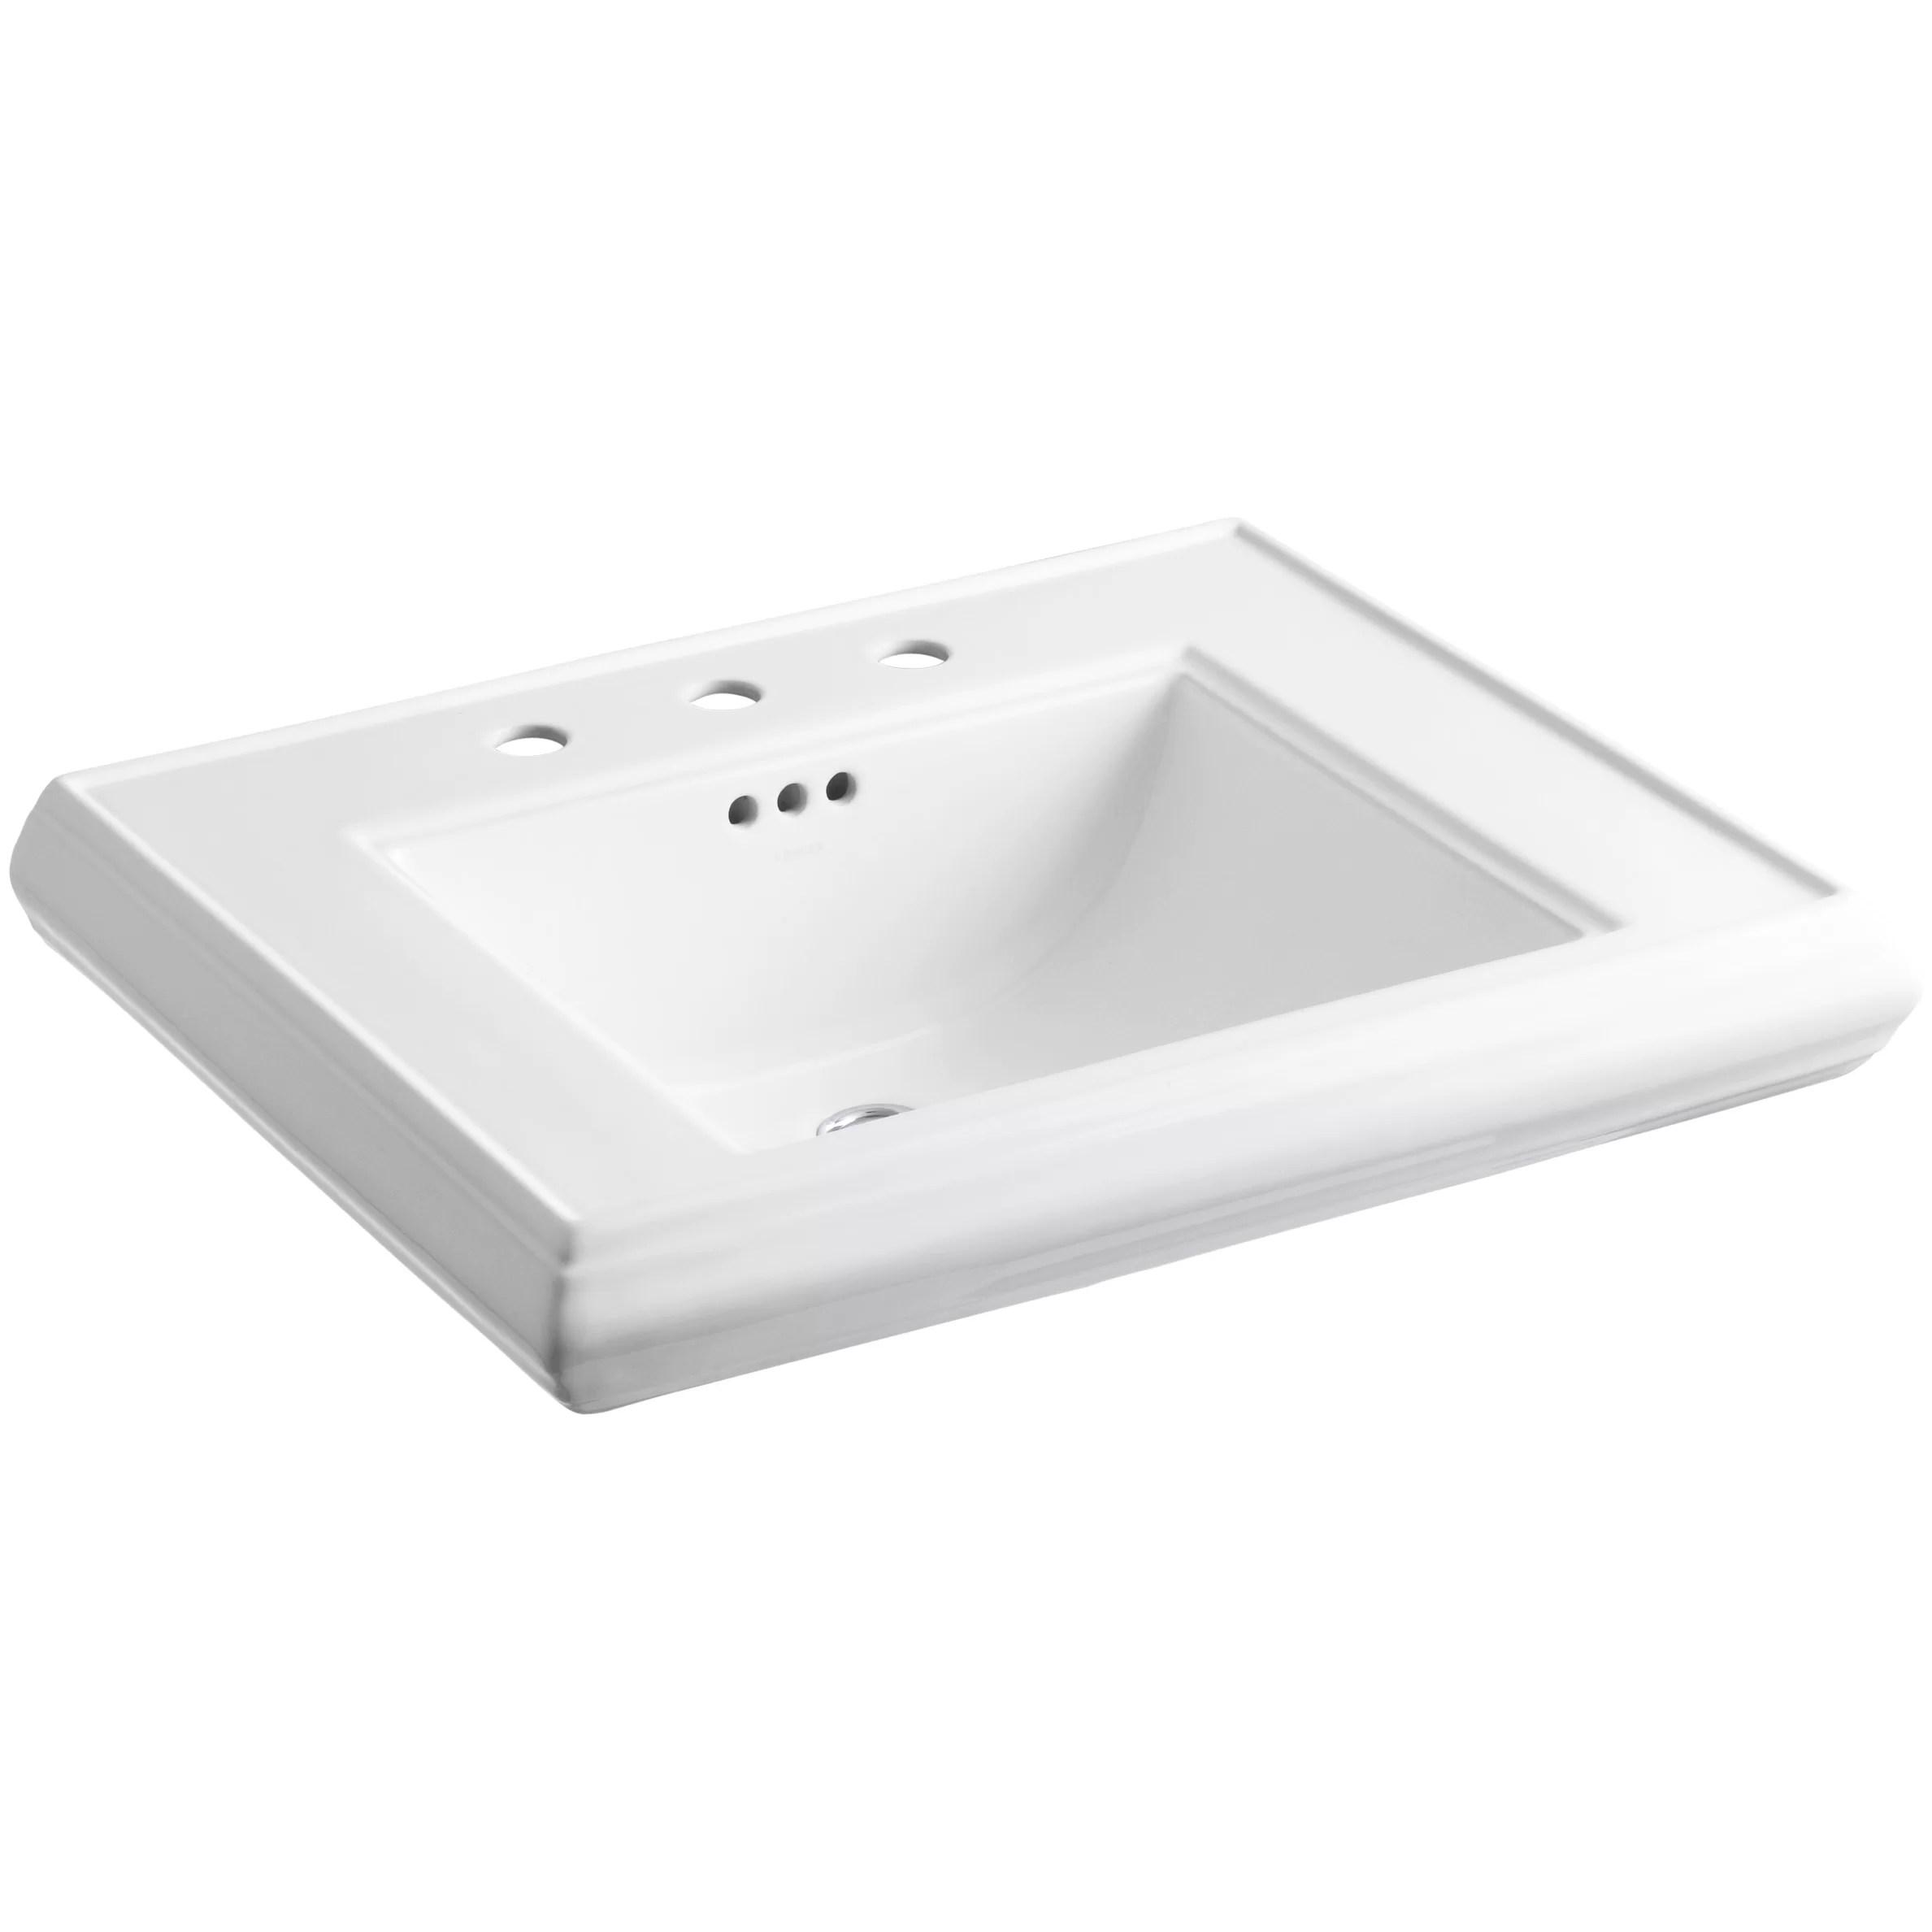 Kohler Memoirs Pedestal Bathroom Sink Basin & Reviews